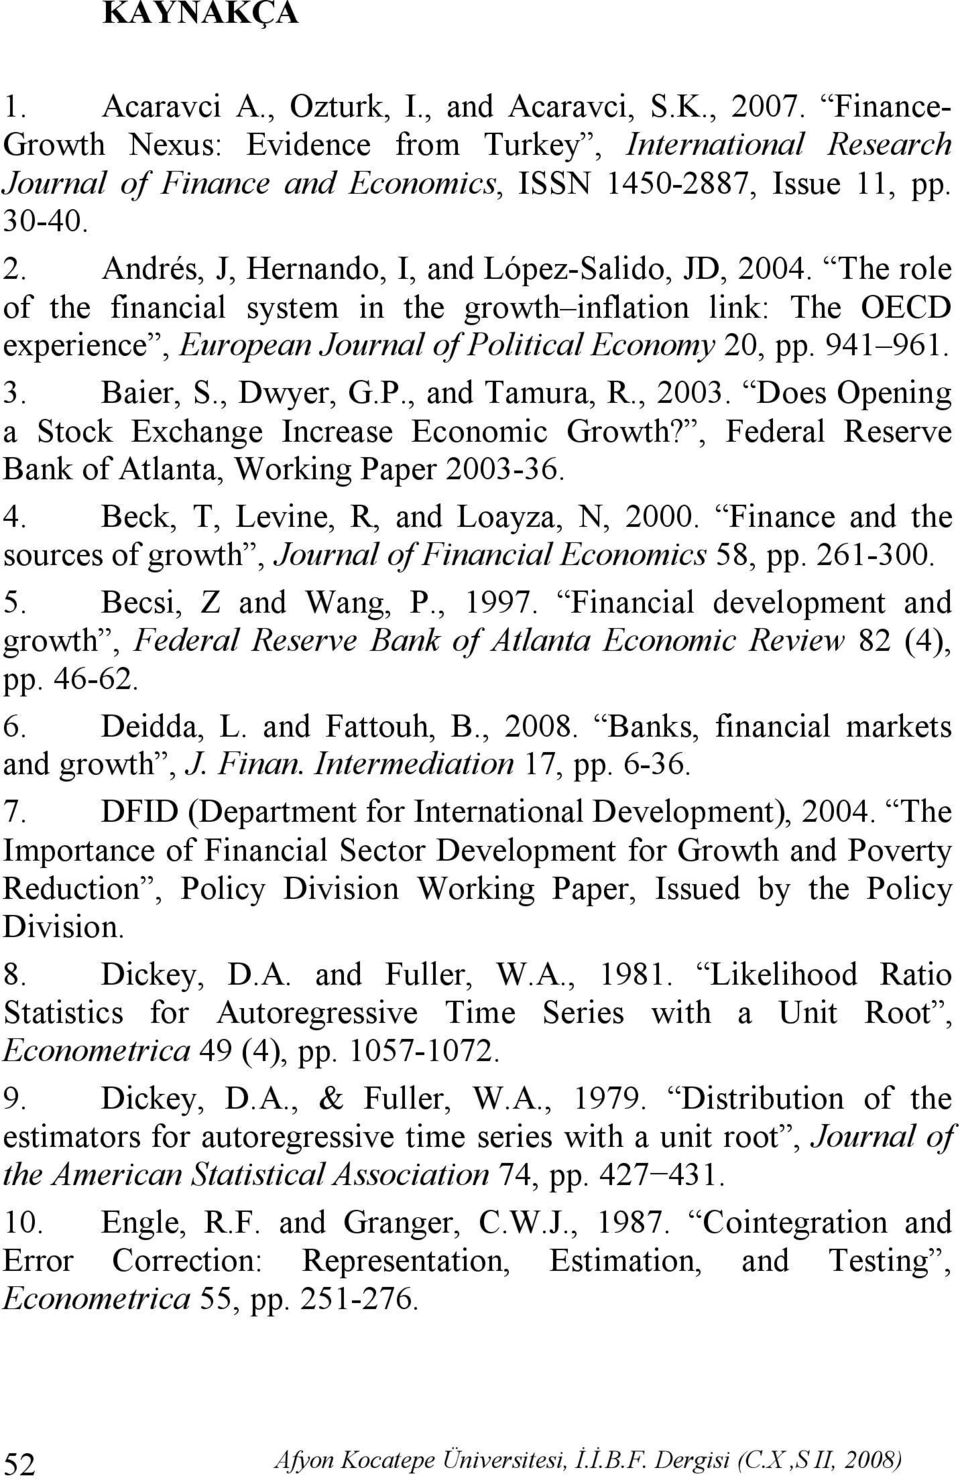 3. Baier, S., Dwyer, G.P., and Tamura, R., 2003. Does Opening a Stock Exchange Increase Economic Growth?, Federal Reserve Bank of Atlanta, Working Paper 2003-36. 4.